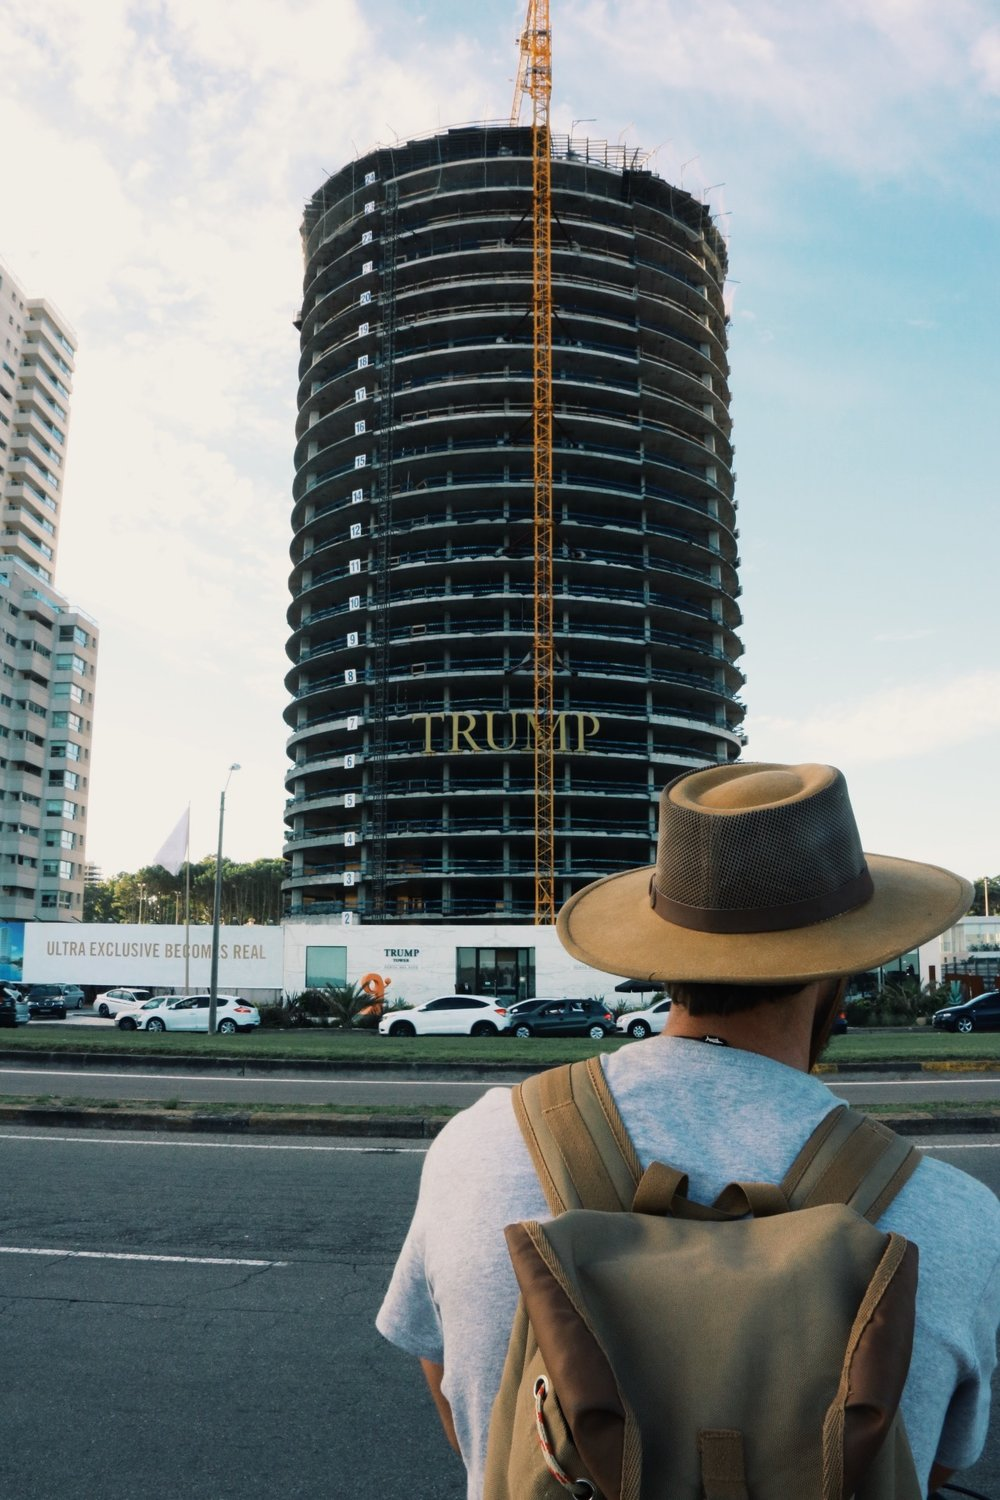 We were surprised that Trump is building a new condo tower here.